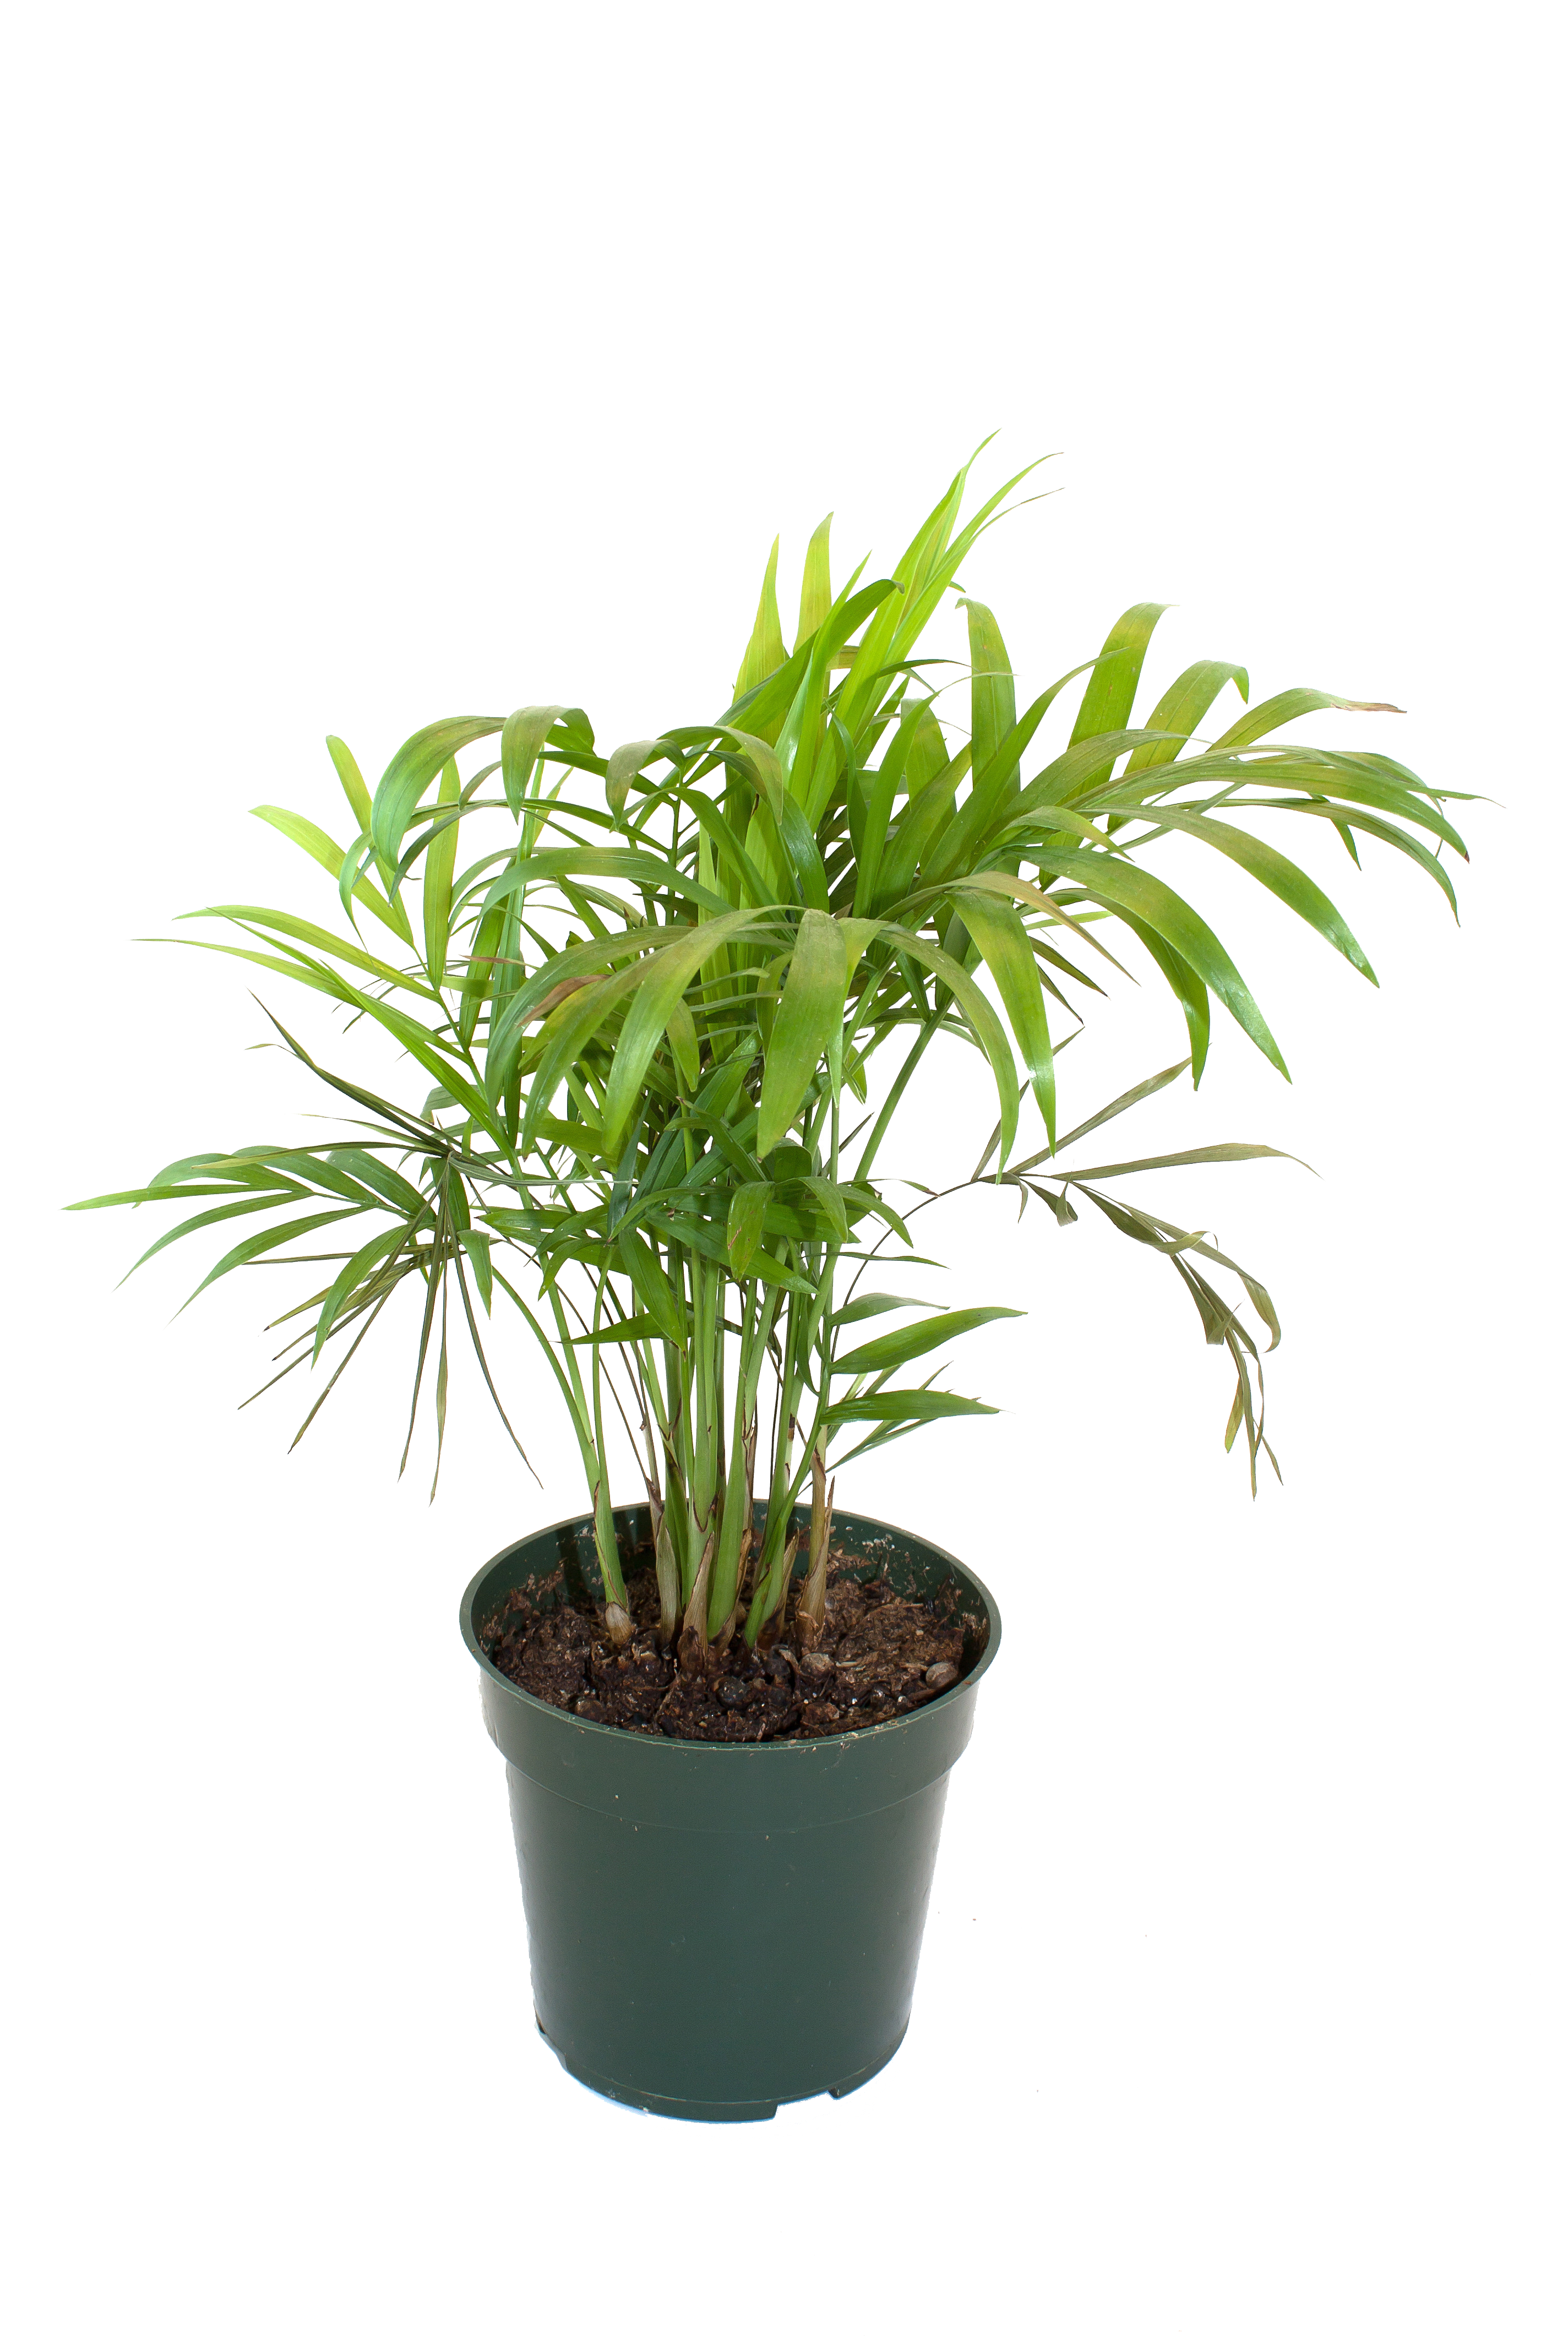 House plant png.  for free download